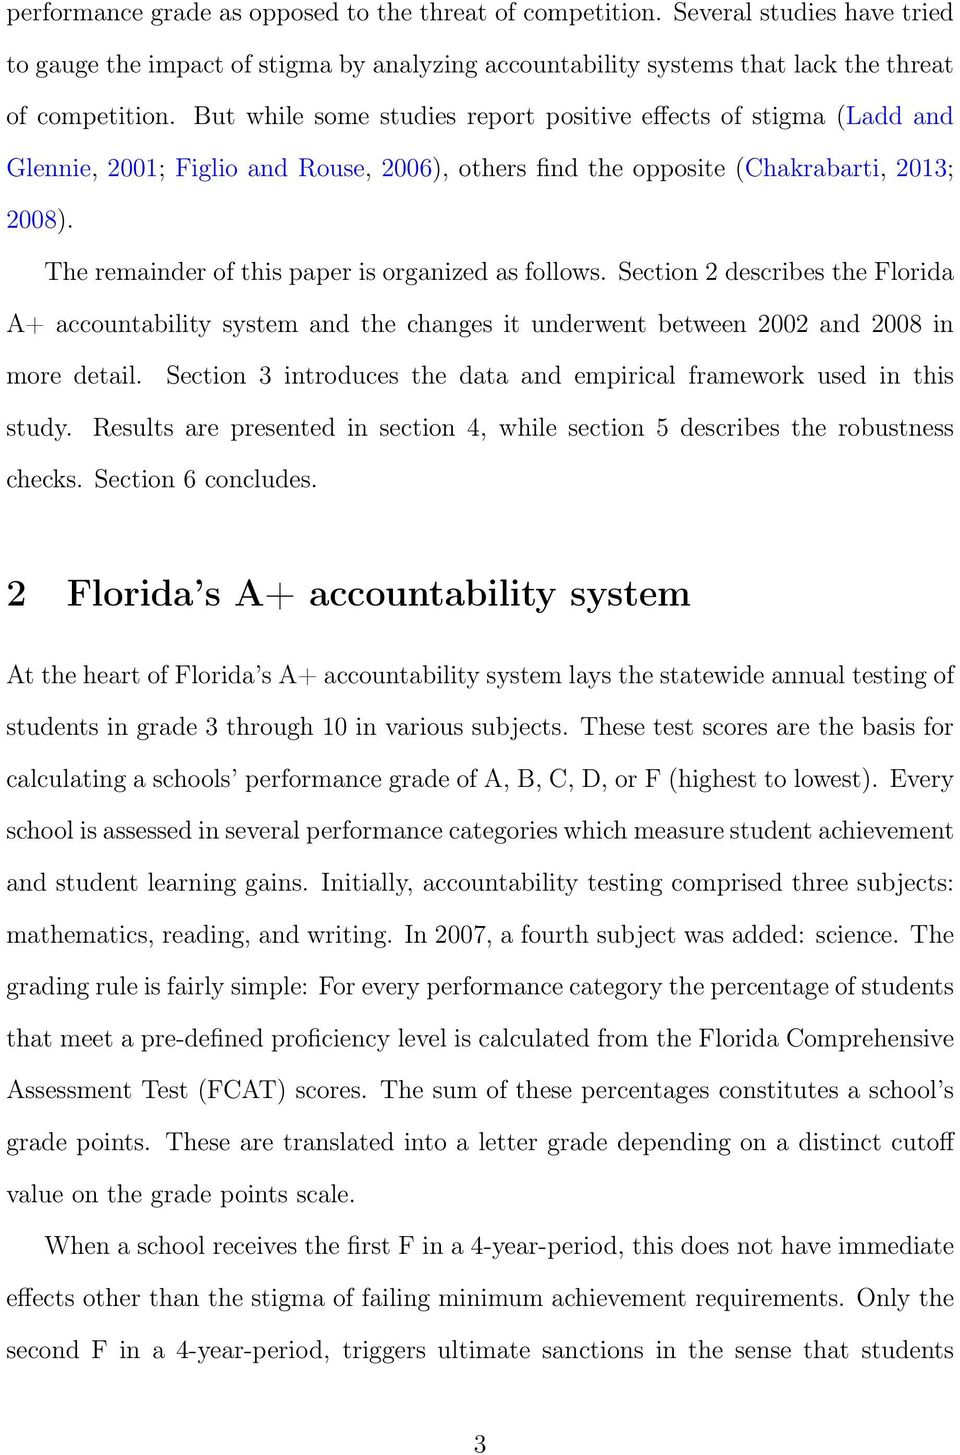 The remainder of this paper is organized as follows. Section 2 describes the Florida A+ accountability system and the changes it underwent between 2002 and 2008 in more detail.